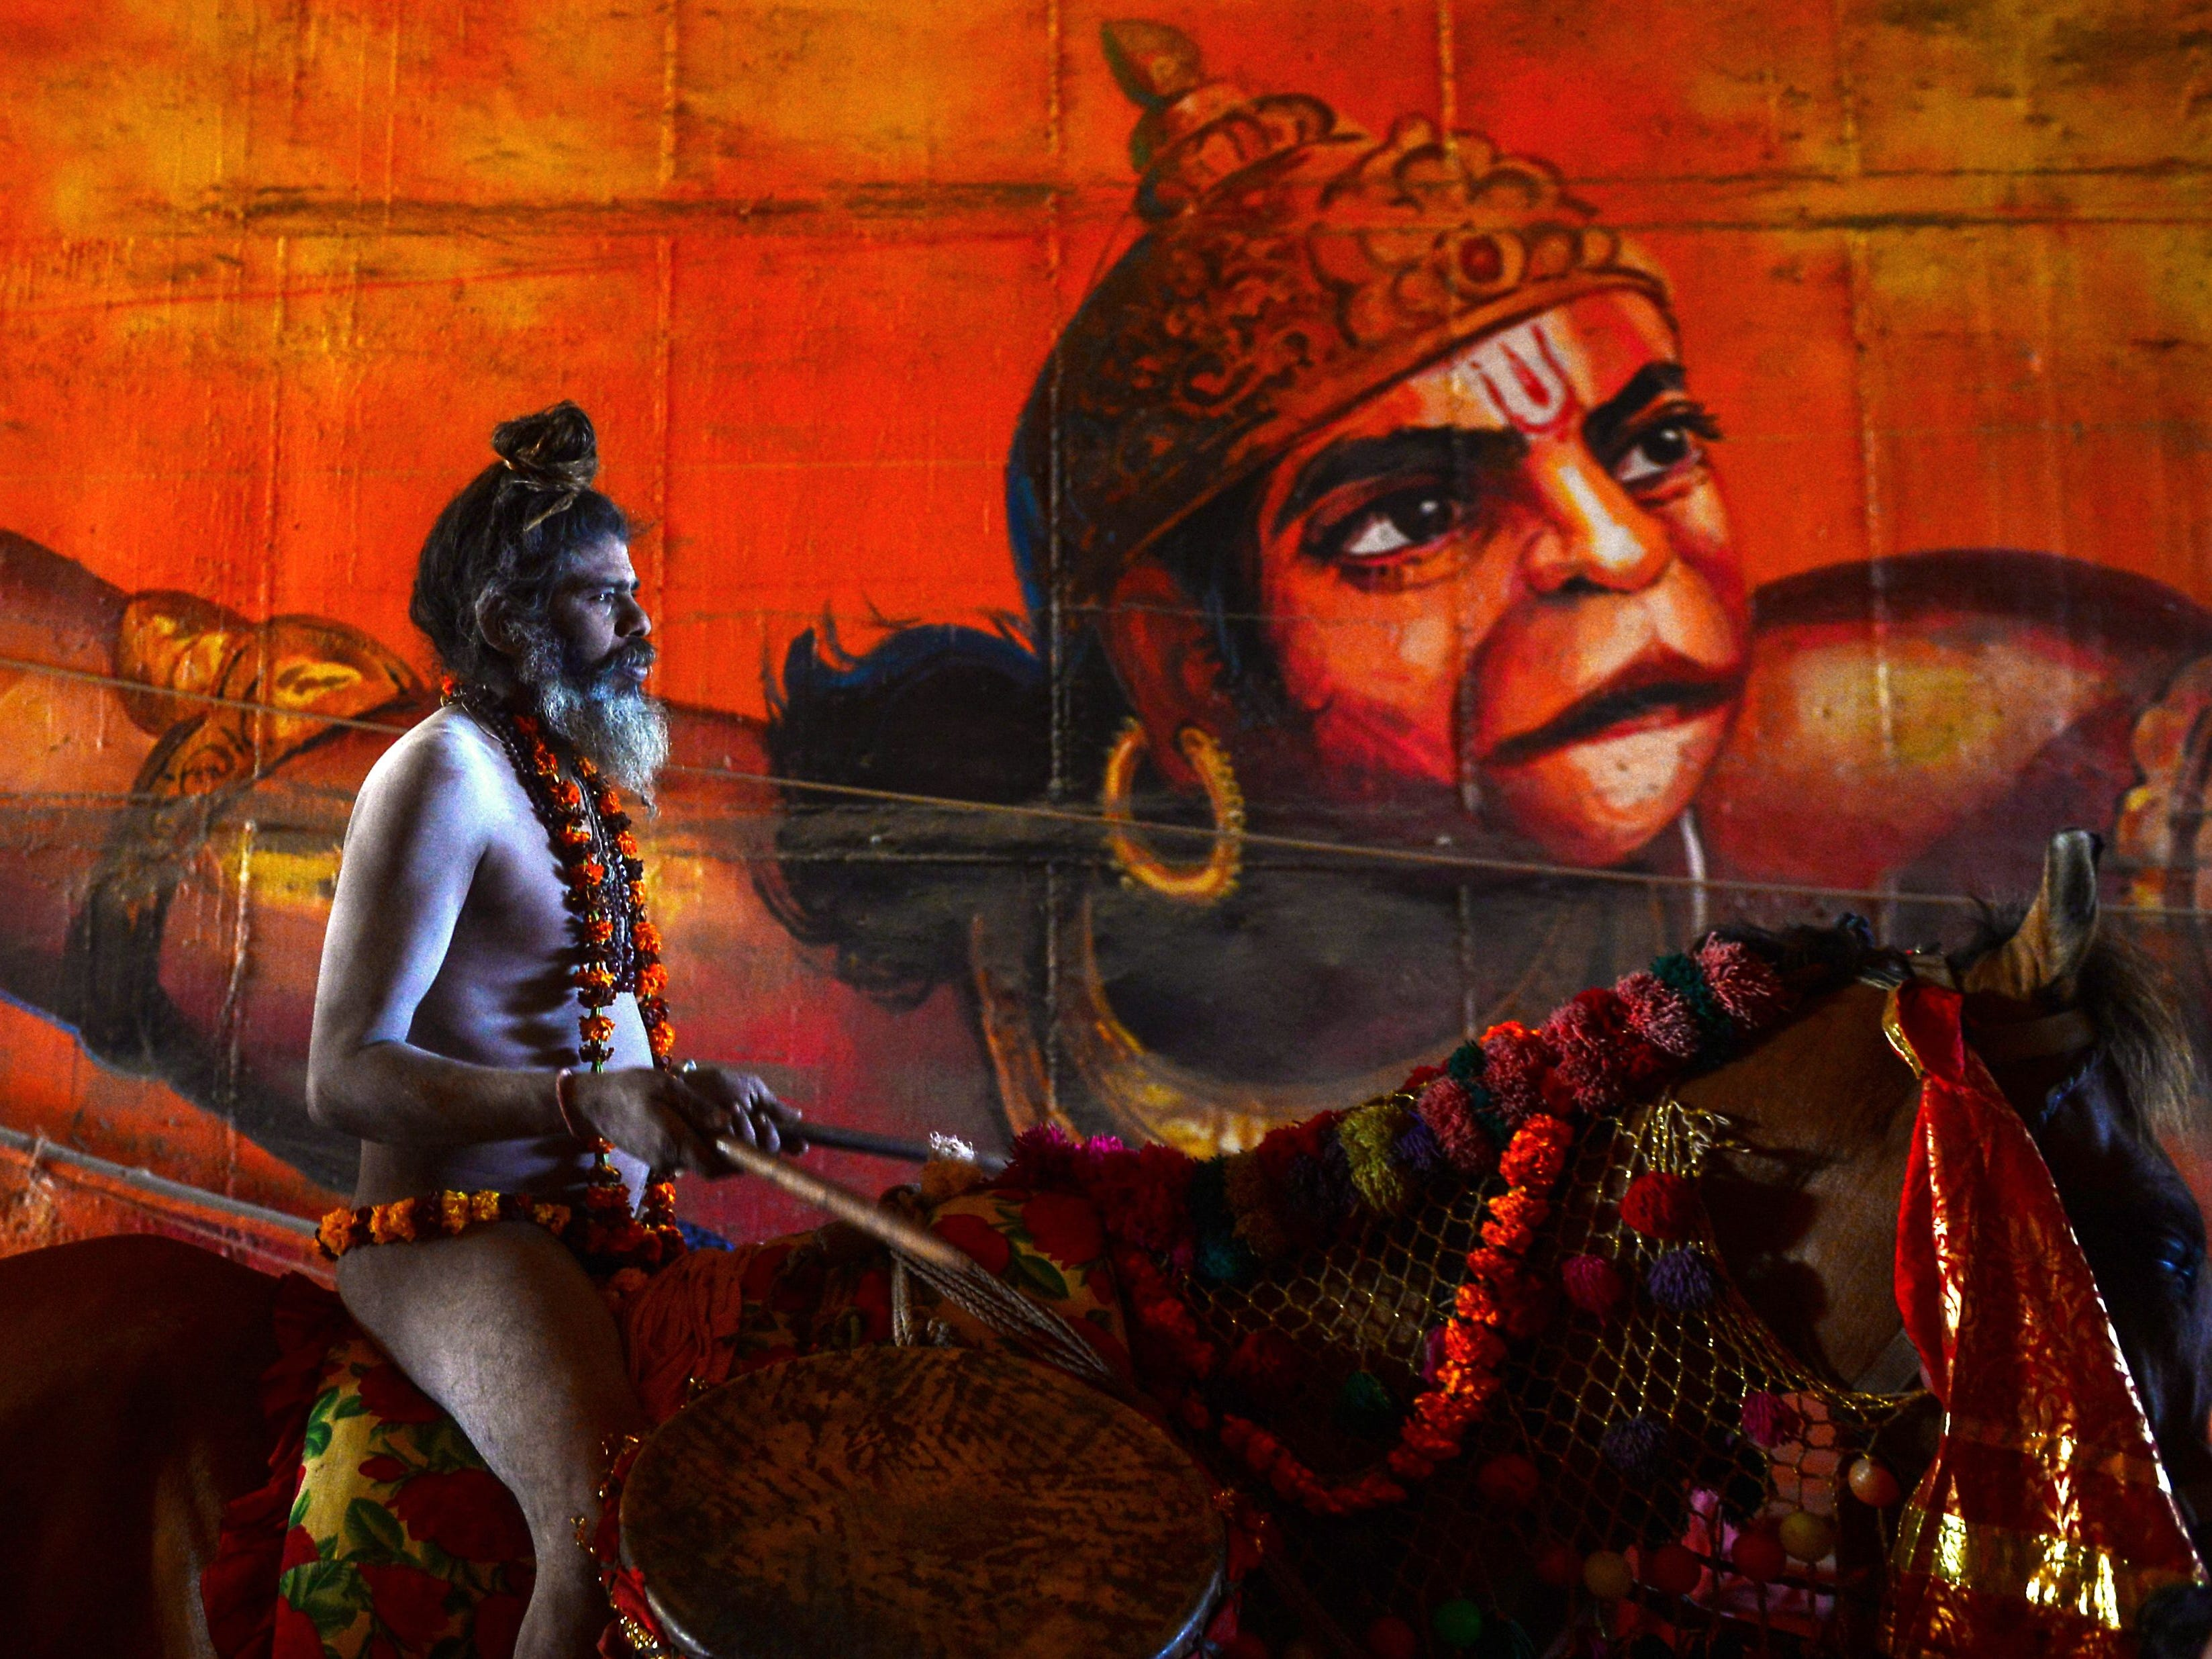 An Indian naked sadhu (Hindu holy man) rides a horse as he takes part in a religious procession towards the Sangam area during the 'royal entry' for the upcoming Kumbh Mela festival in Allahabad on Jan. 4, 2019. The festival attracts millions of Hindu pilgrims to the sacred confluence of the Yamuna and Ganges rivers over 49 days between January 15 and March 4.